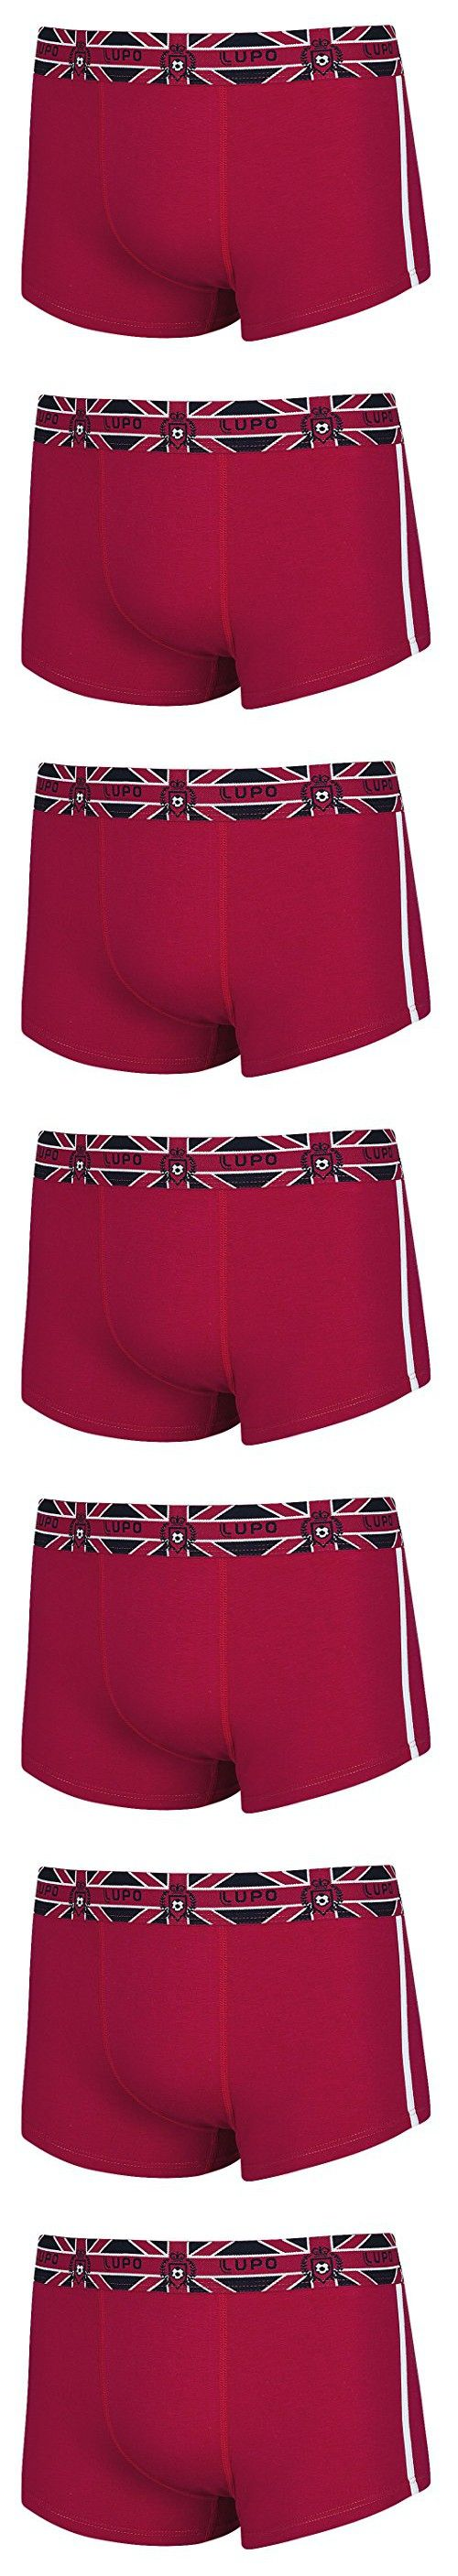 Lupo Men's Support Your Country Soccer Sunga Trunks, Medium, England Red